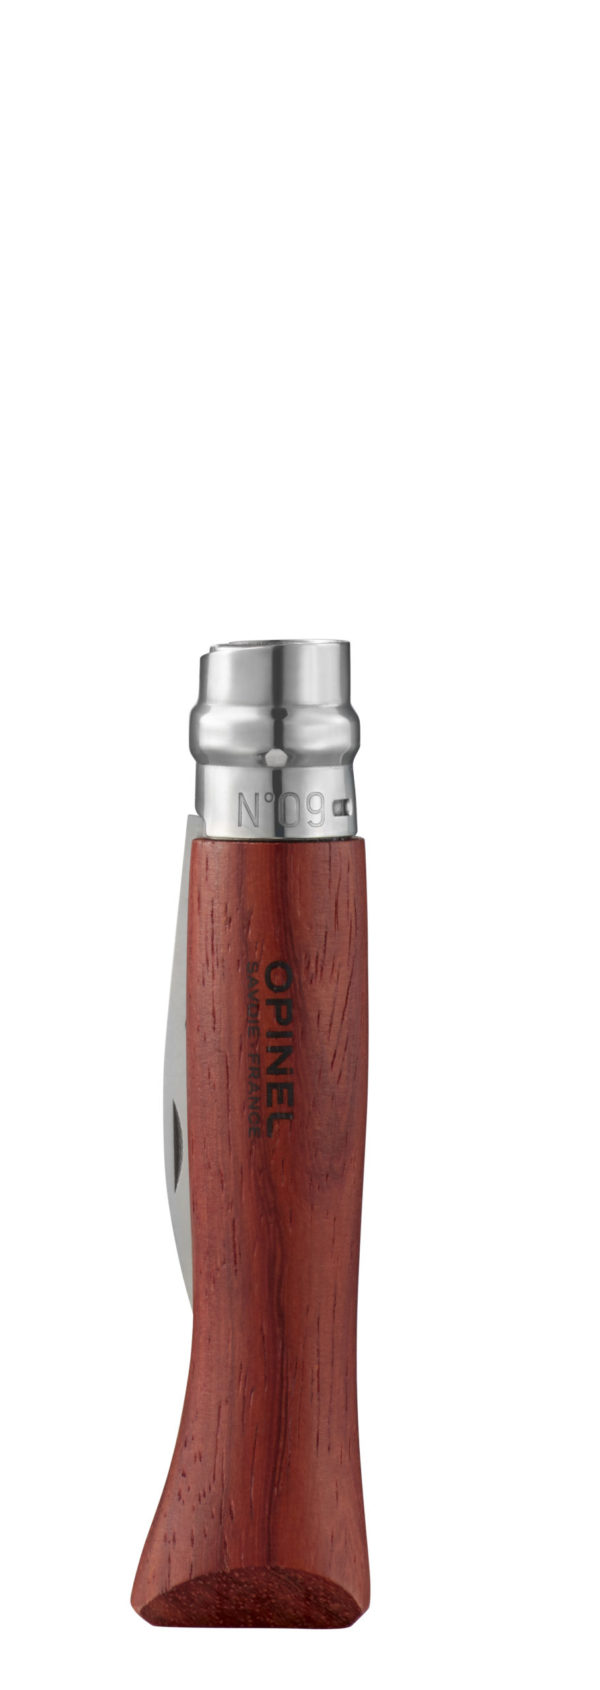 couteau huitres opinel